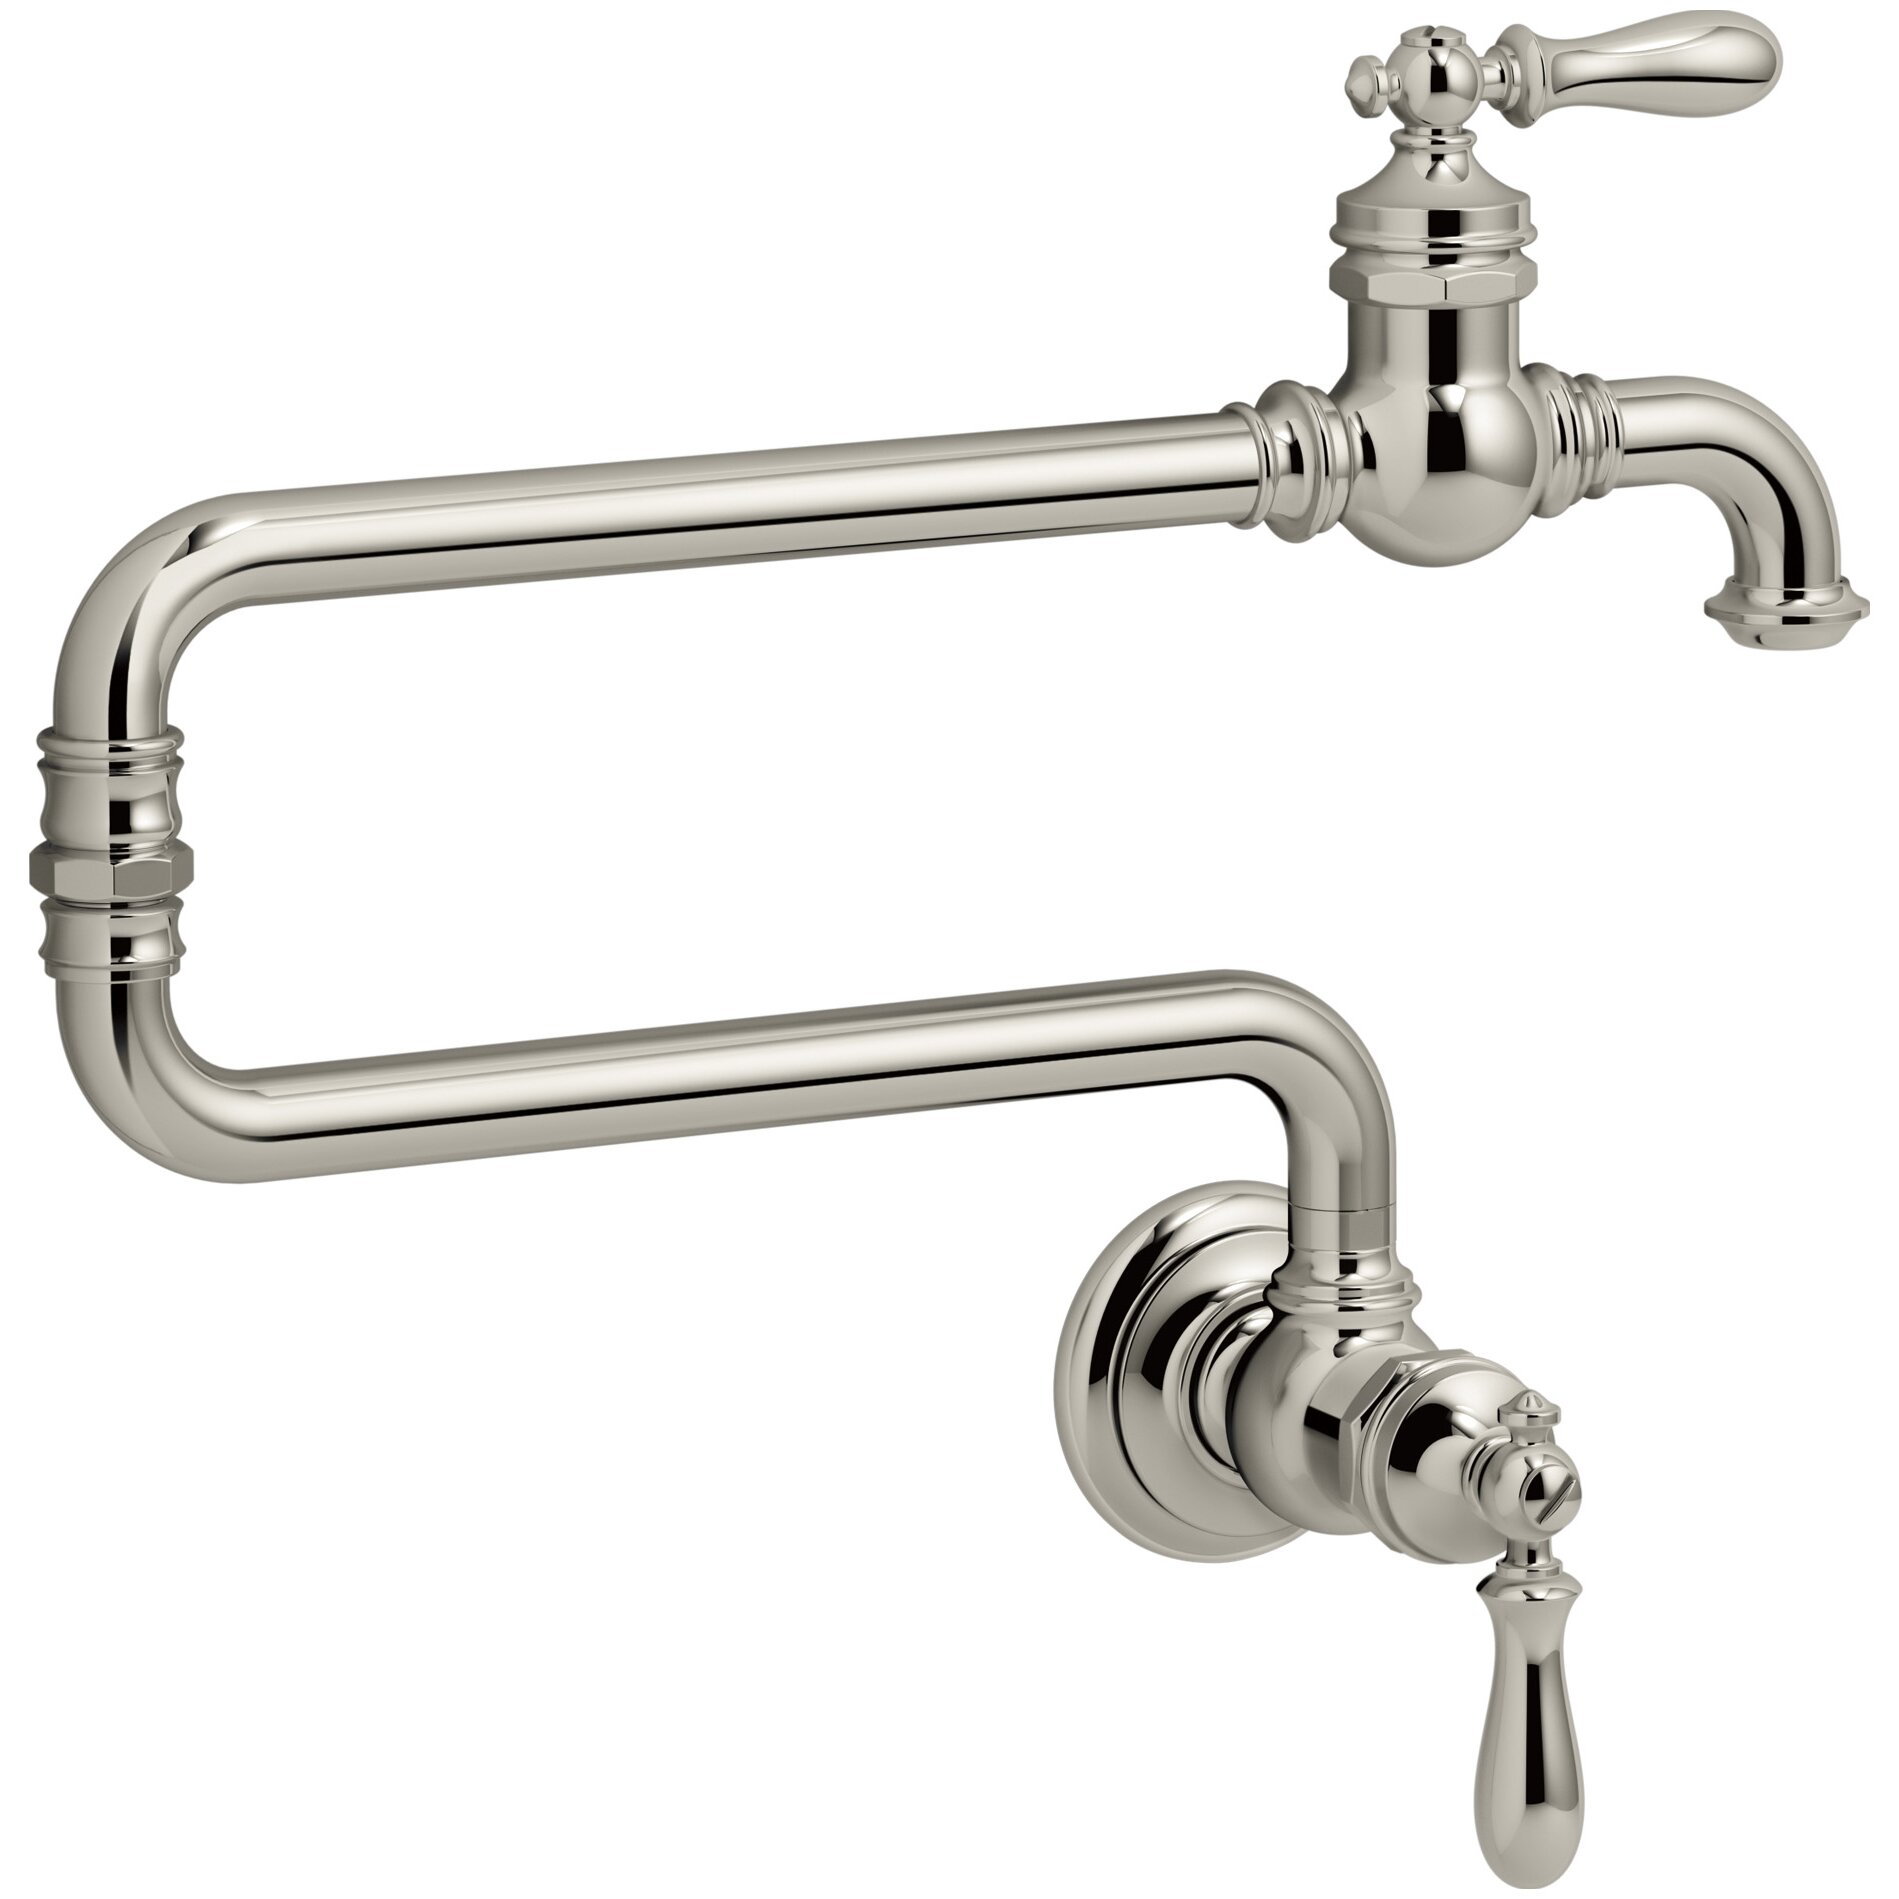 Kohler Artifacts(R) Single-Hole Wall-Mount Pot Filler Kitchen Sink ...